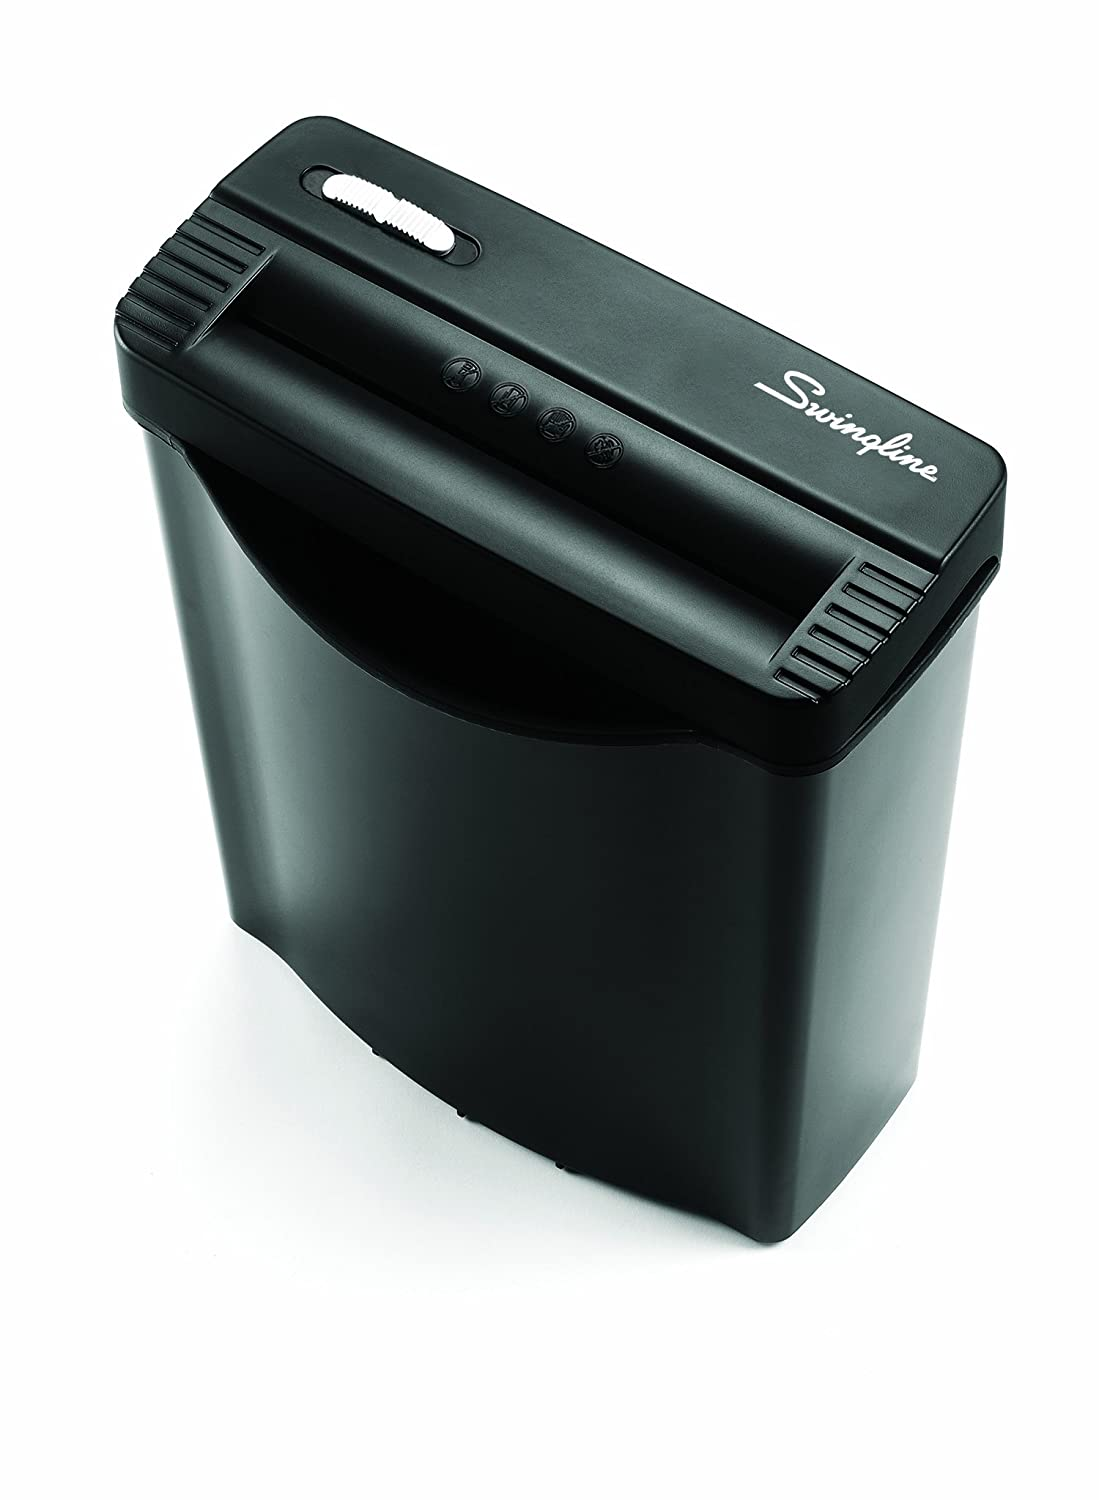 Swingline GX5 Personal Shredder, Cross-Cut, 5-6 Sheet Capacity, 1 User (3381609370) Kensington Office Equipment